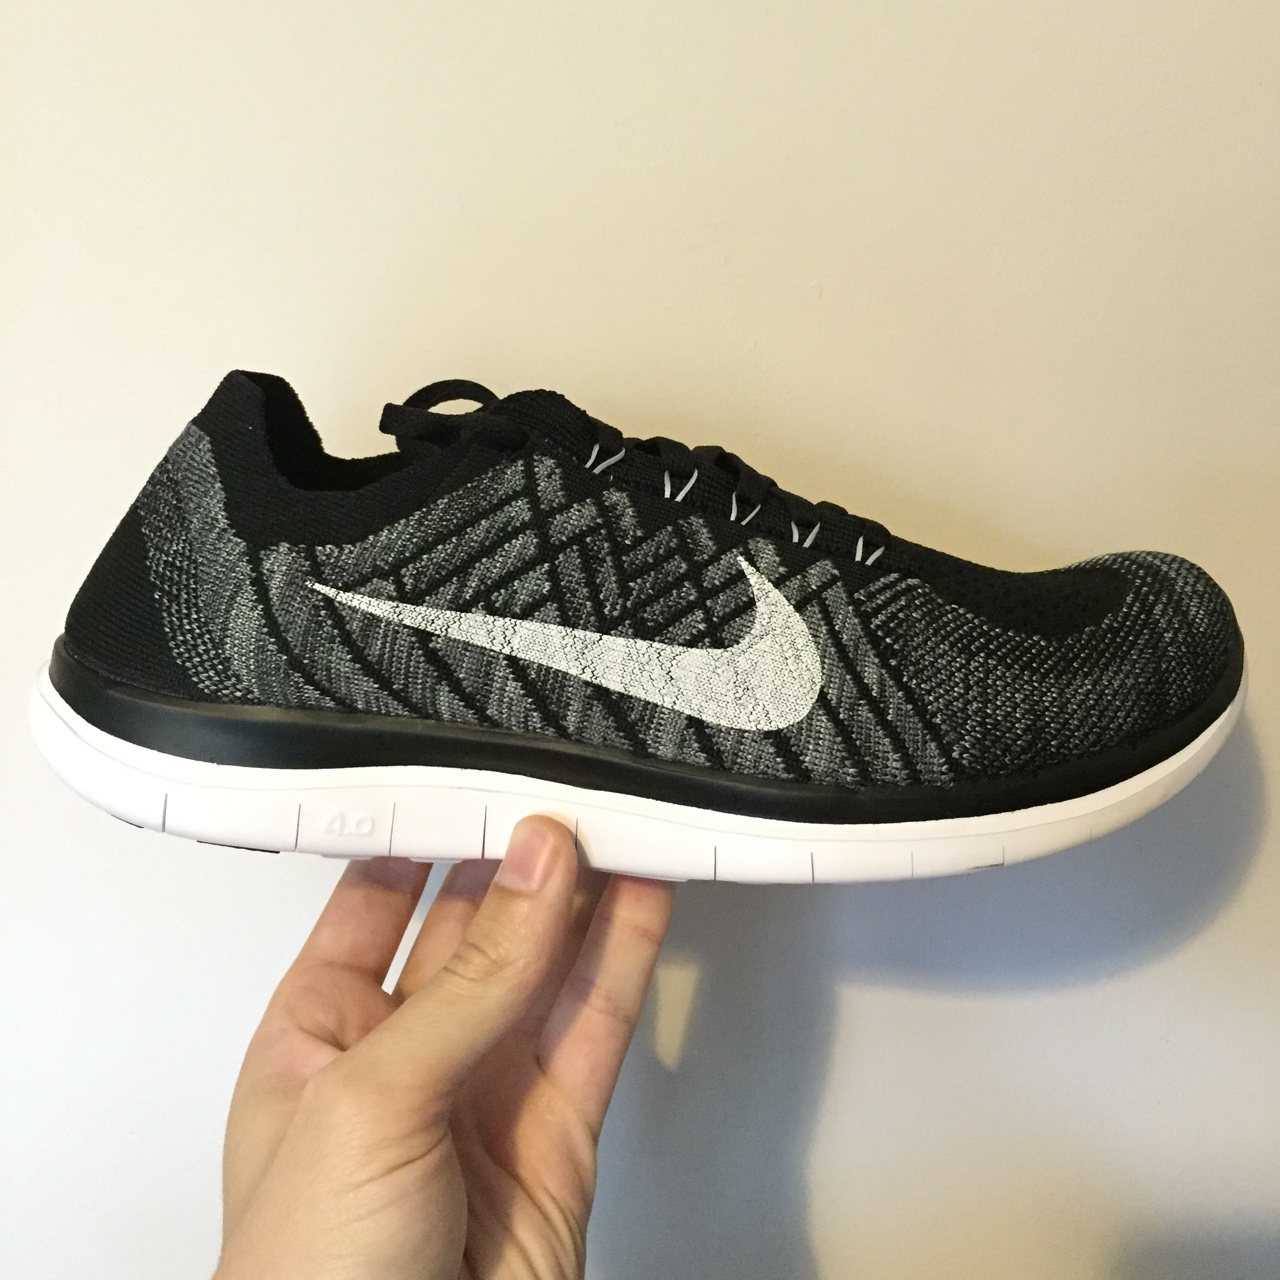 new product 2b379 3c1c5 BRAND NEW IN BOX!! Nike free flyknit 4.0 in Oreo... - Depop